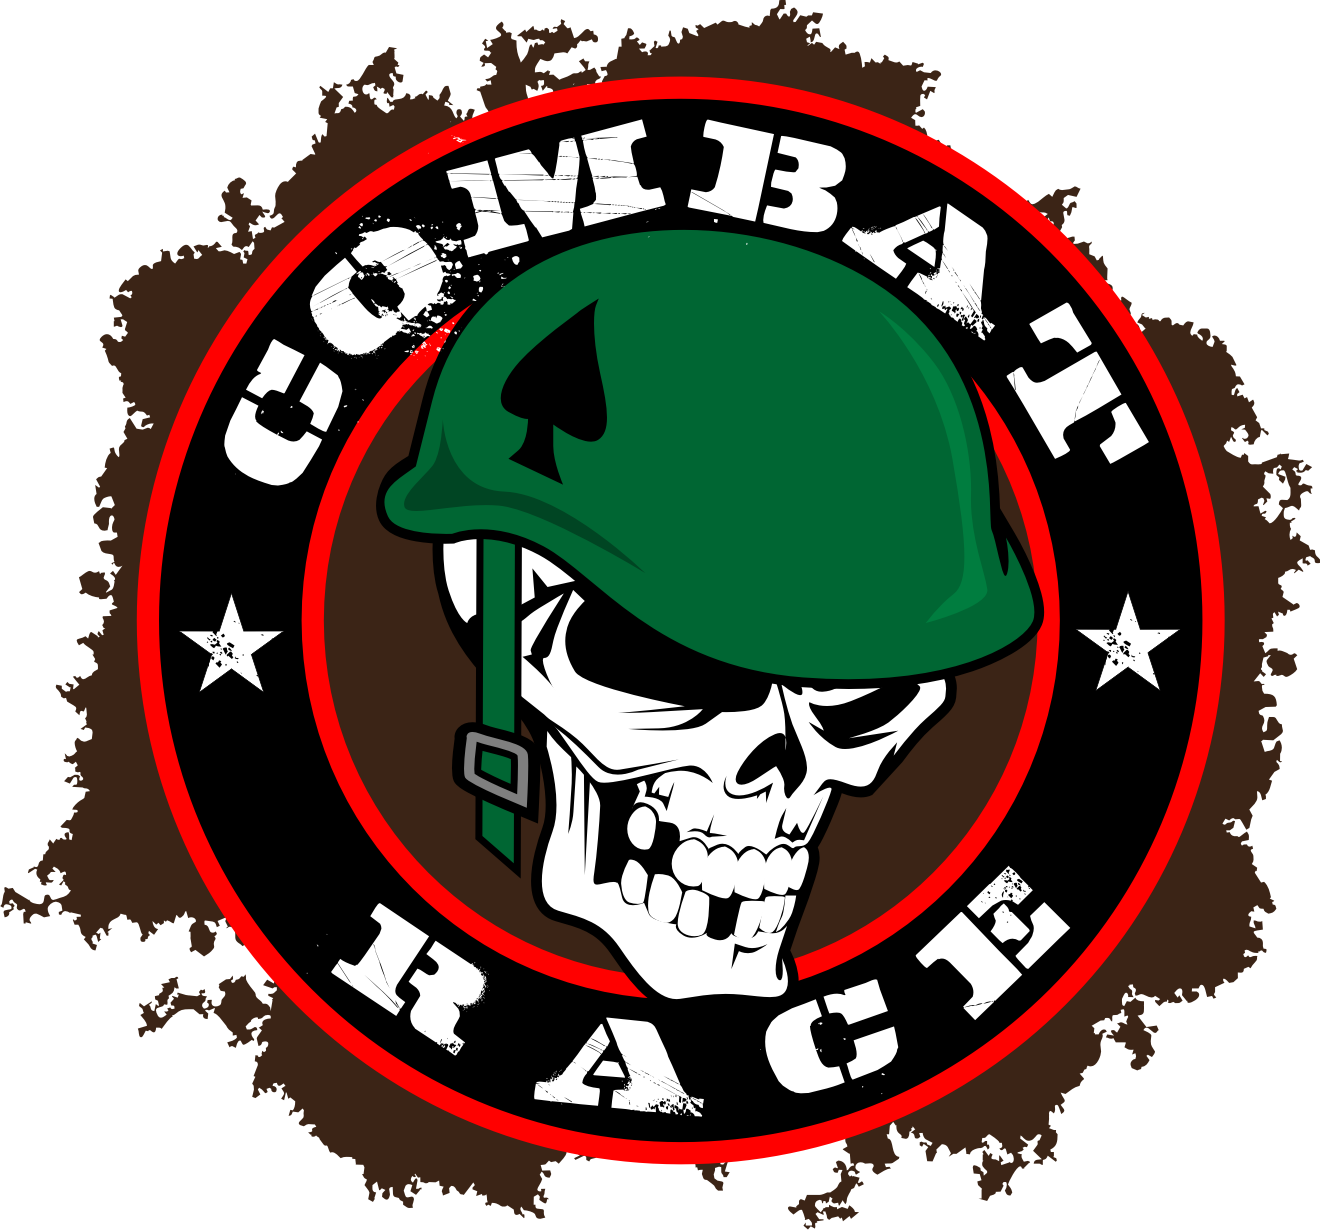 Tough, Rugged logo wanted for Combat Race